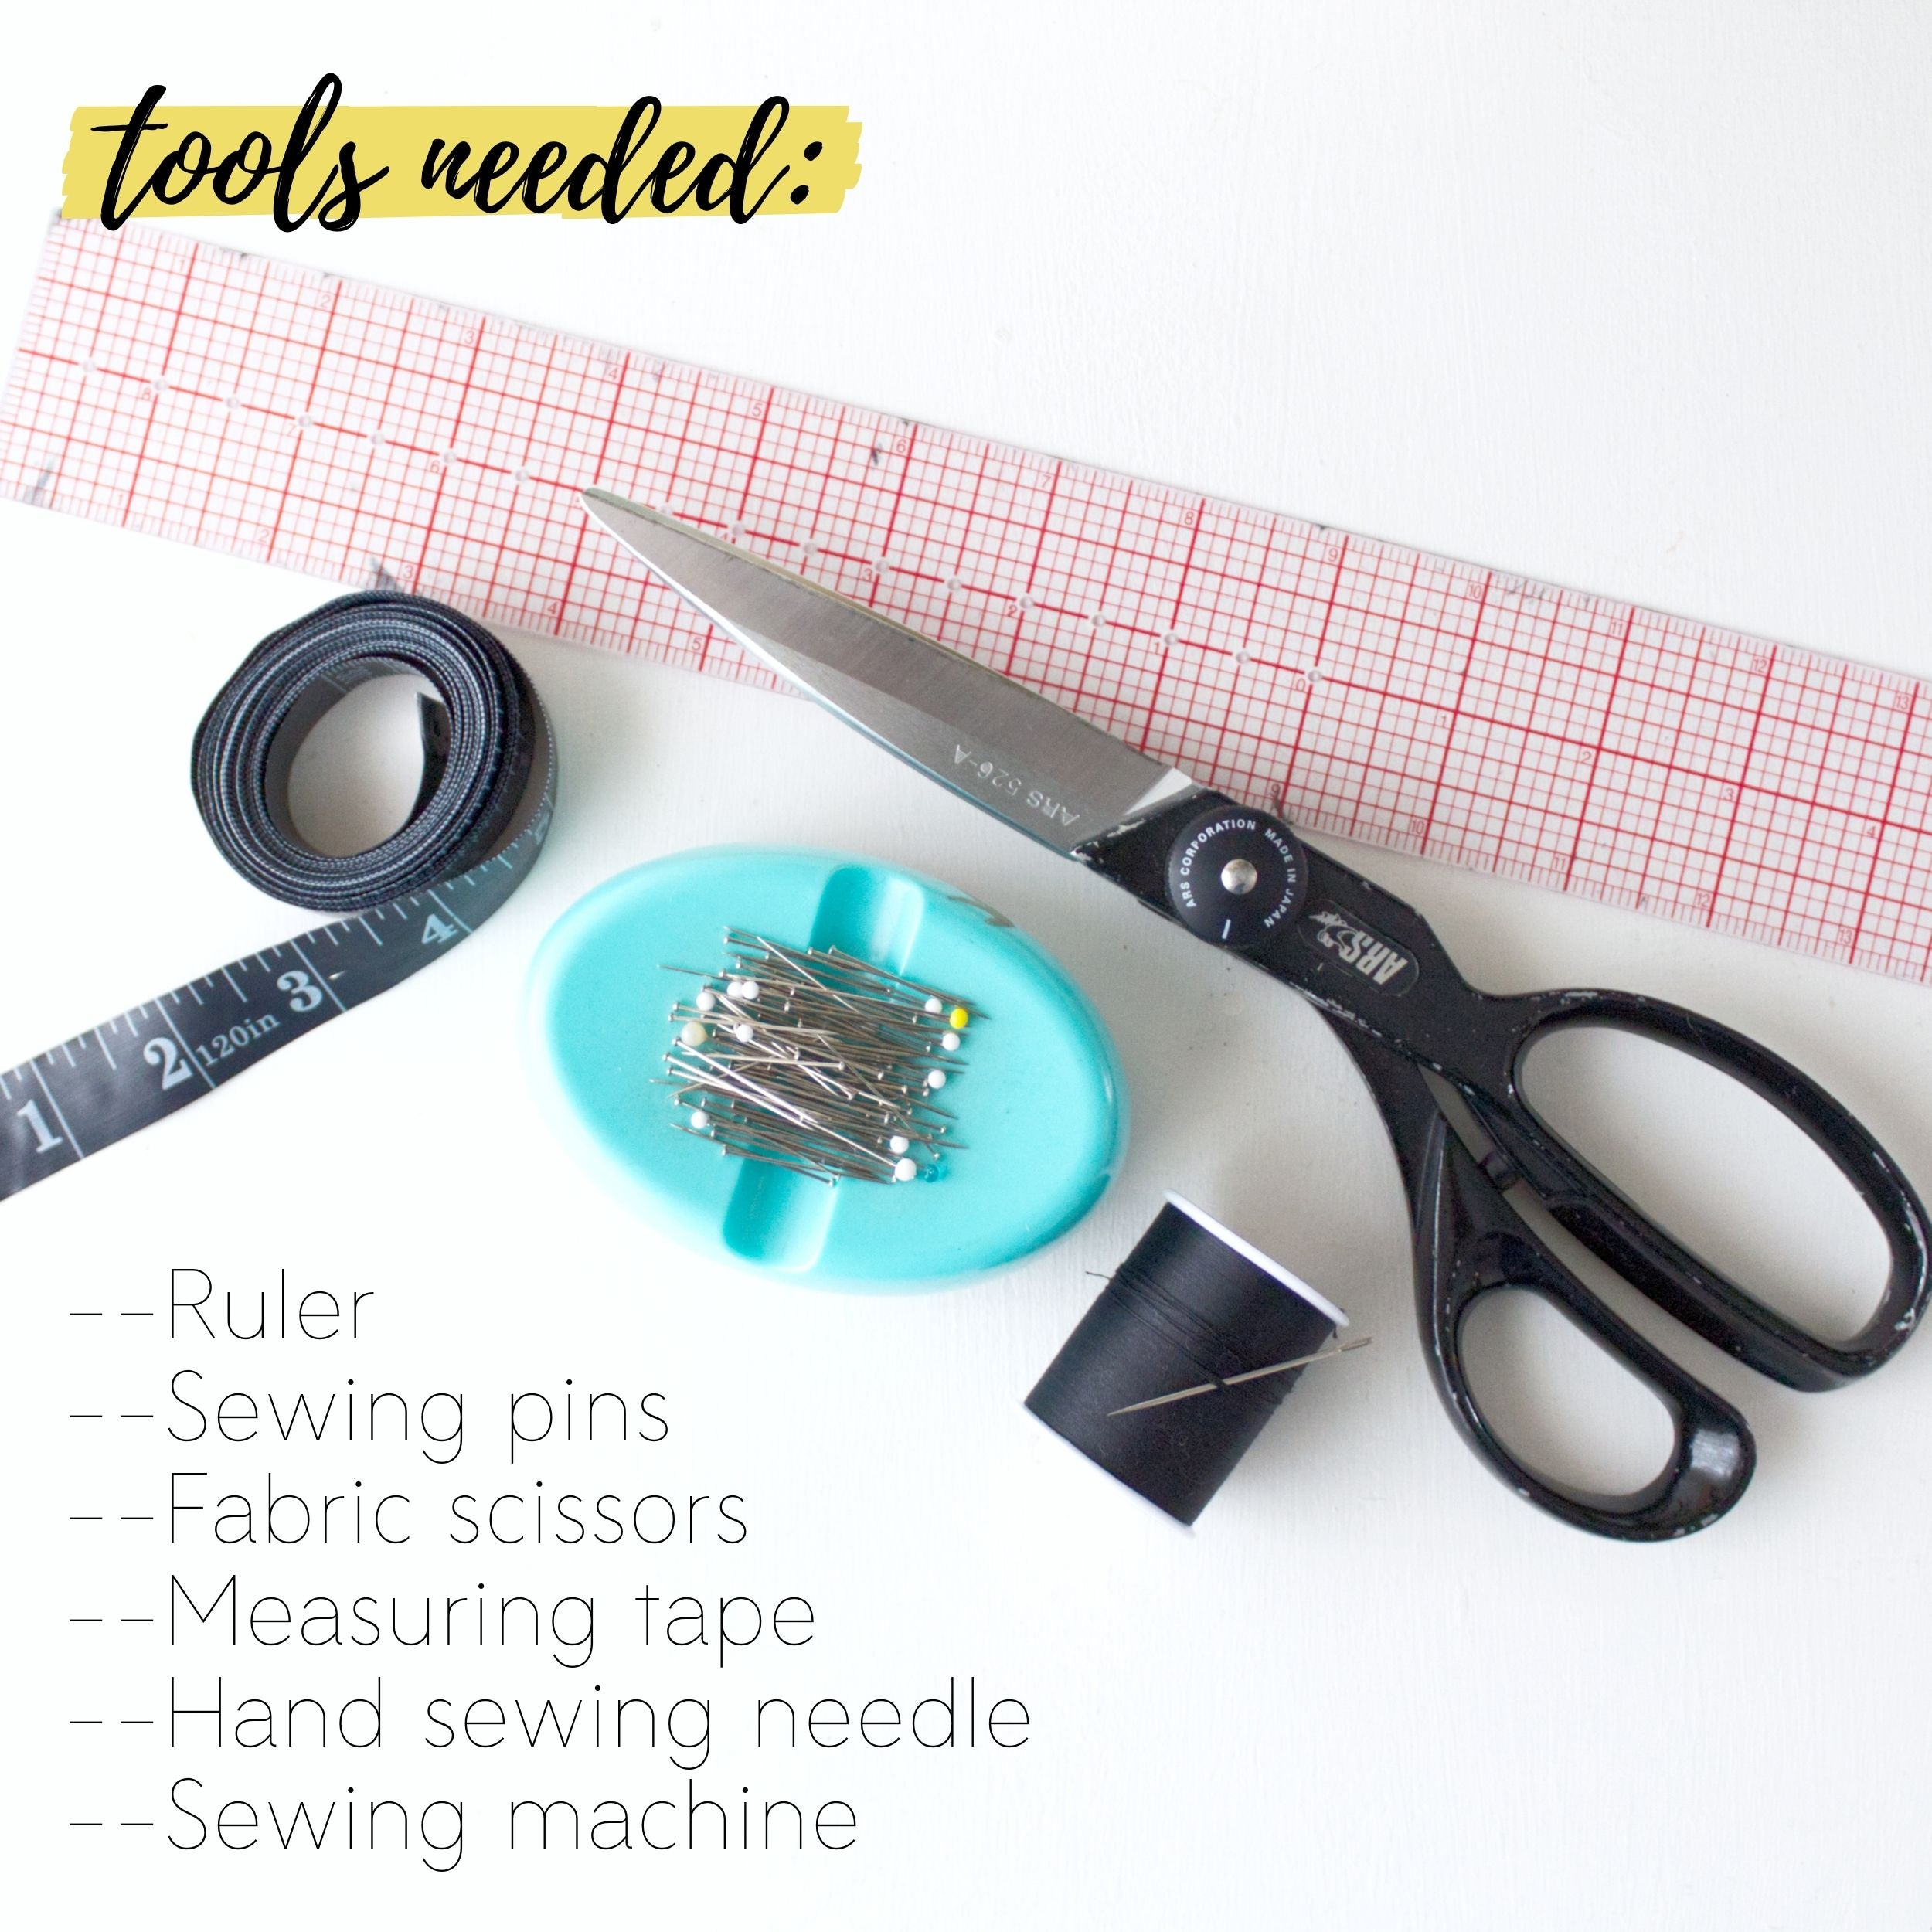 How to make a DIY fabric planter: Tools needed